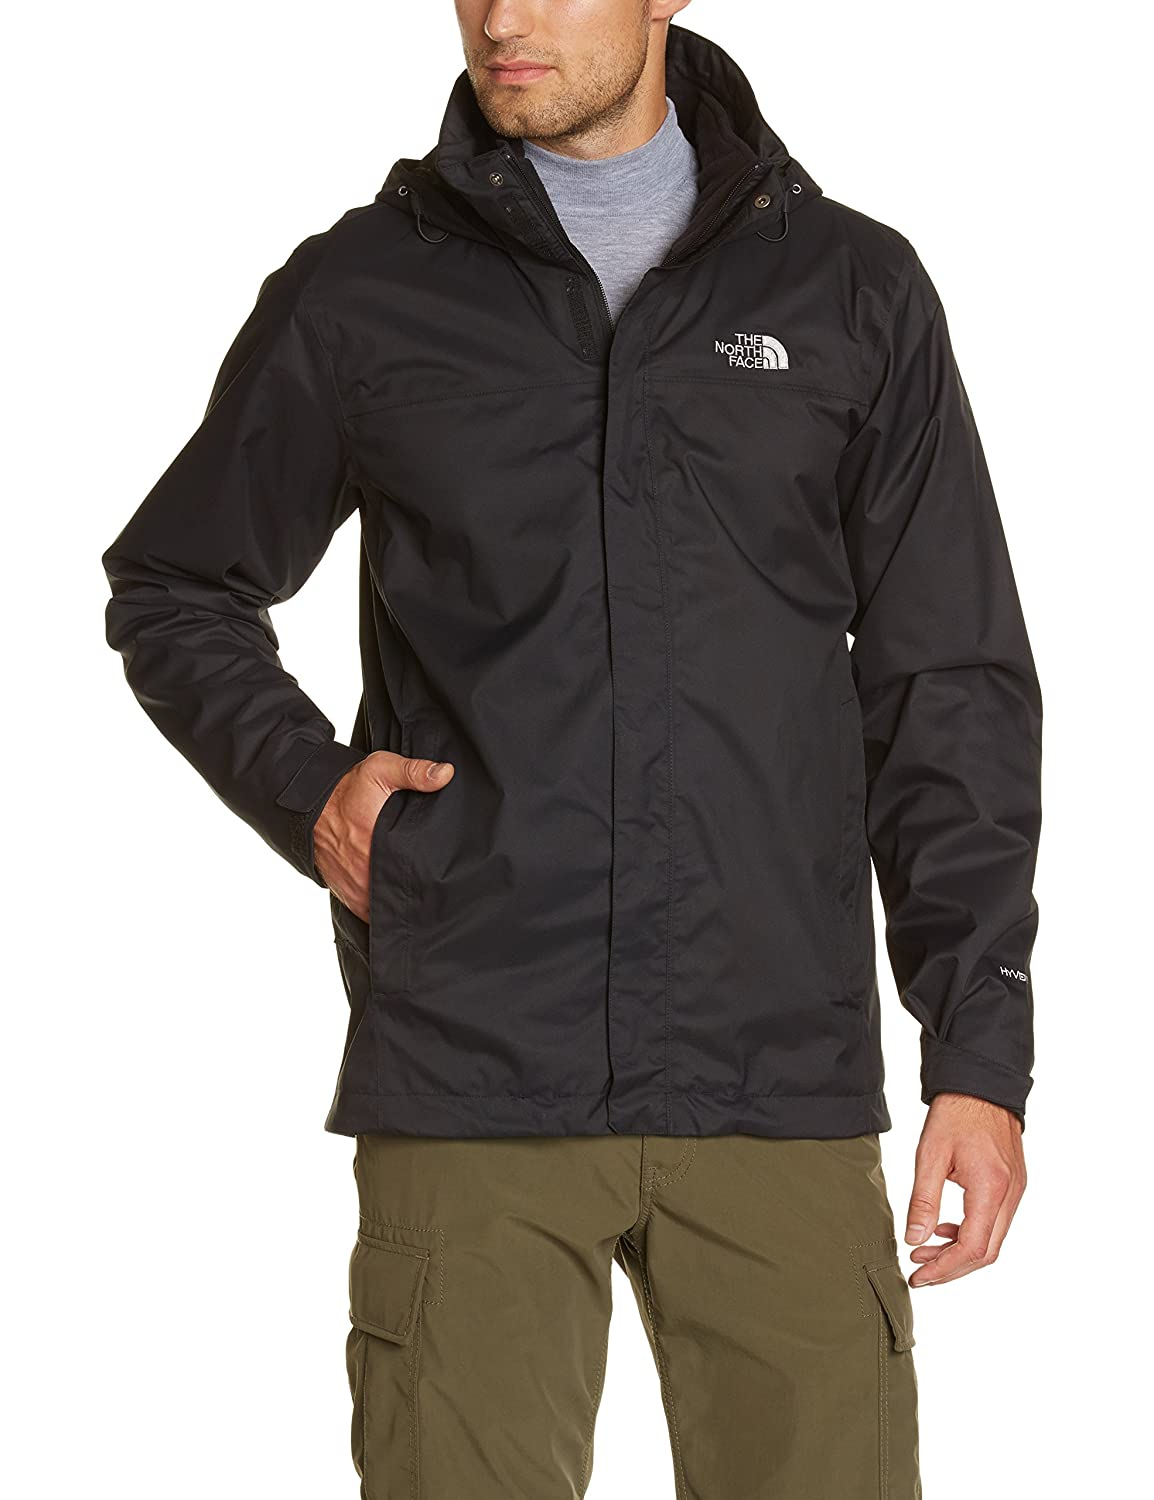 THE NORTH FACE Herren Doppeljacke Evolve II Triclimate online kaufen